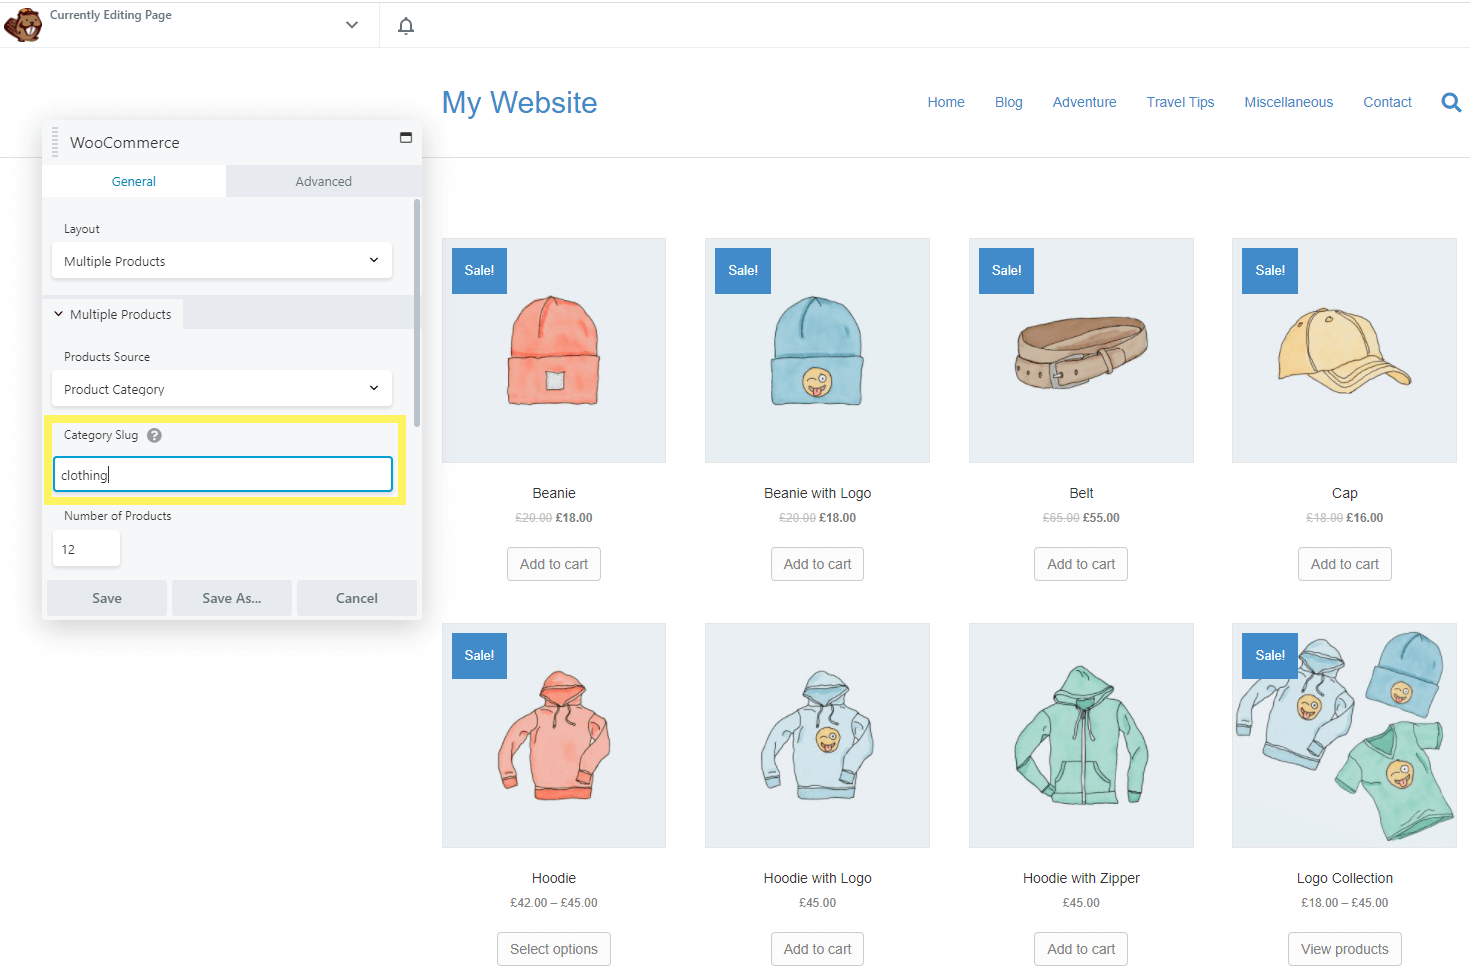 Displaying products by category in the WooCommerce module.